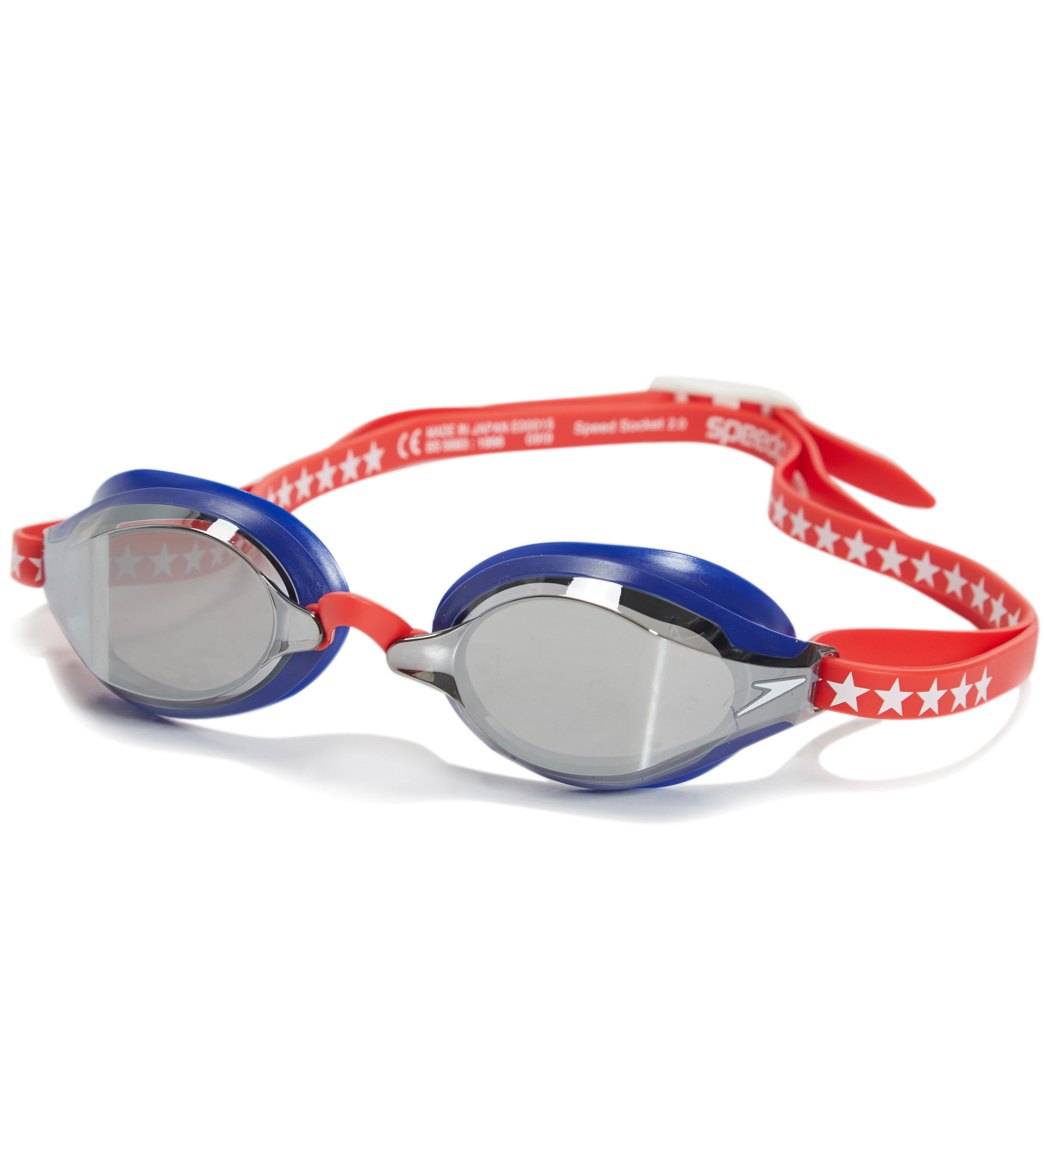 Speedo Speed Socket 2.0 Mirrored Competition Goggles